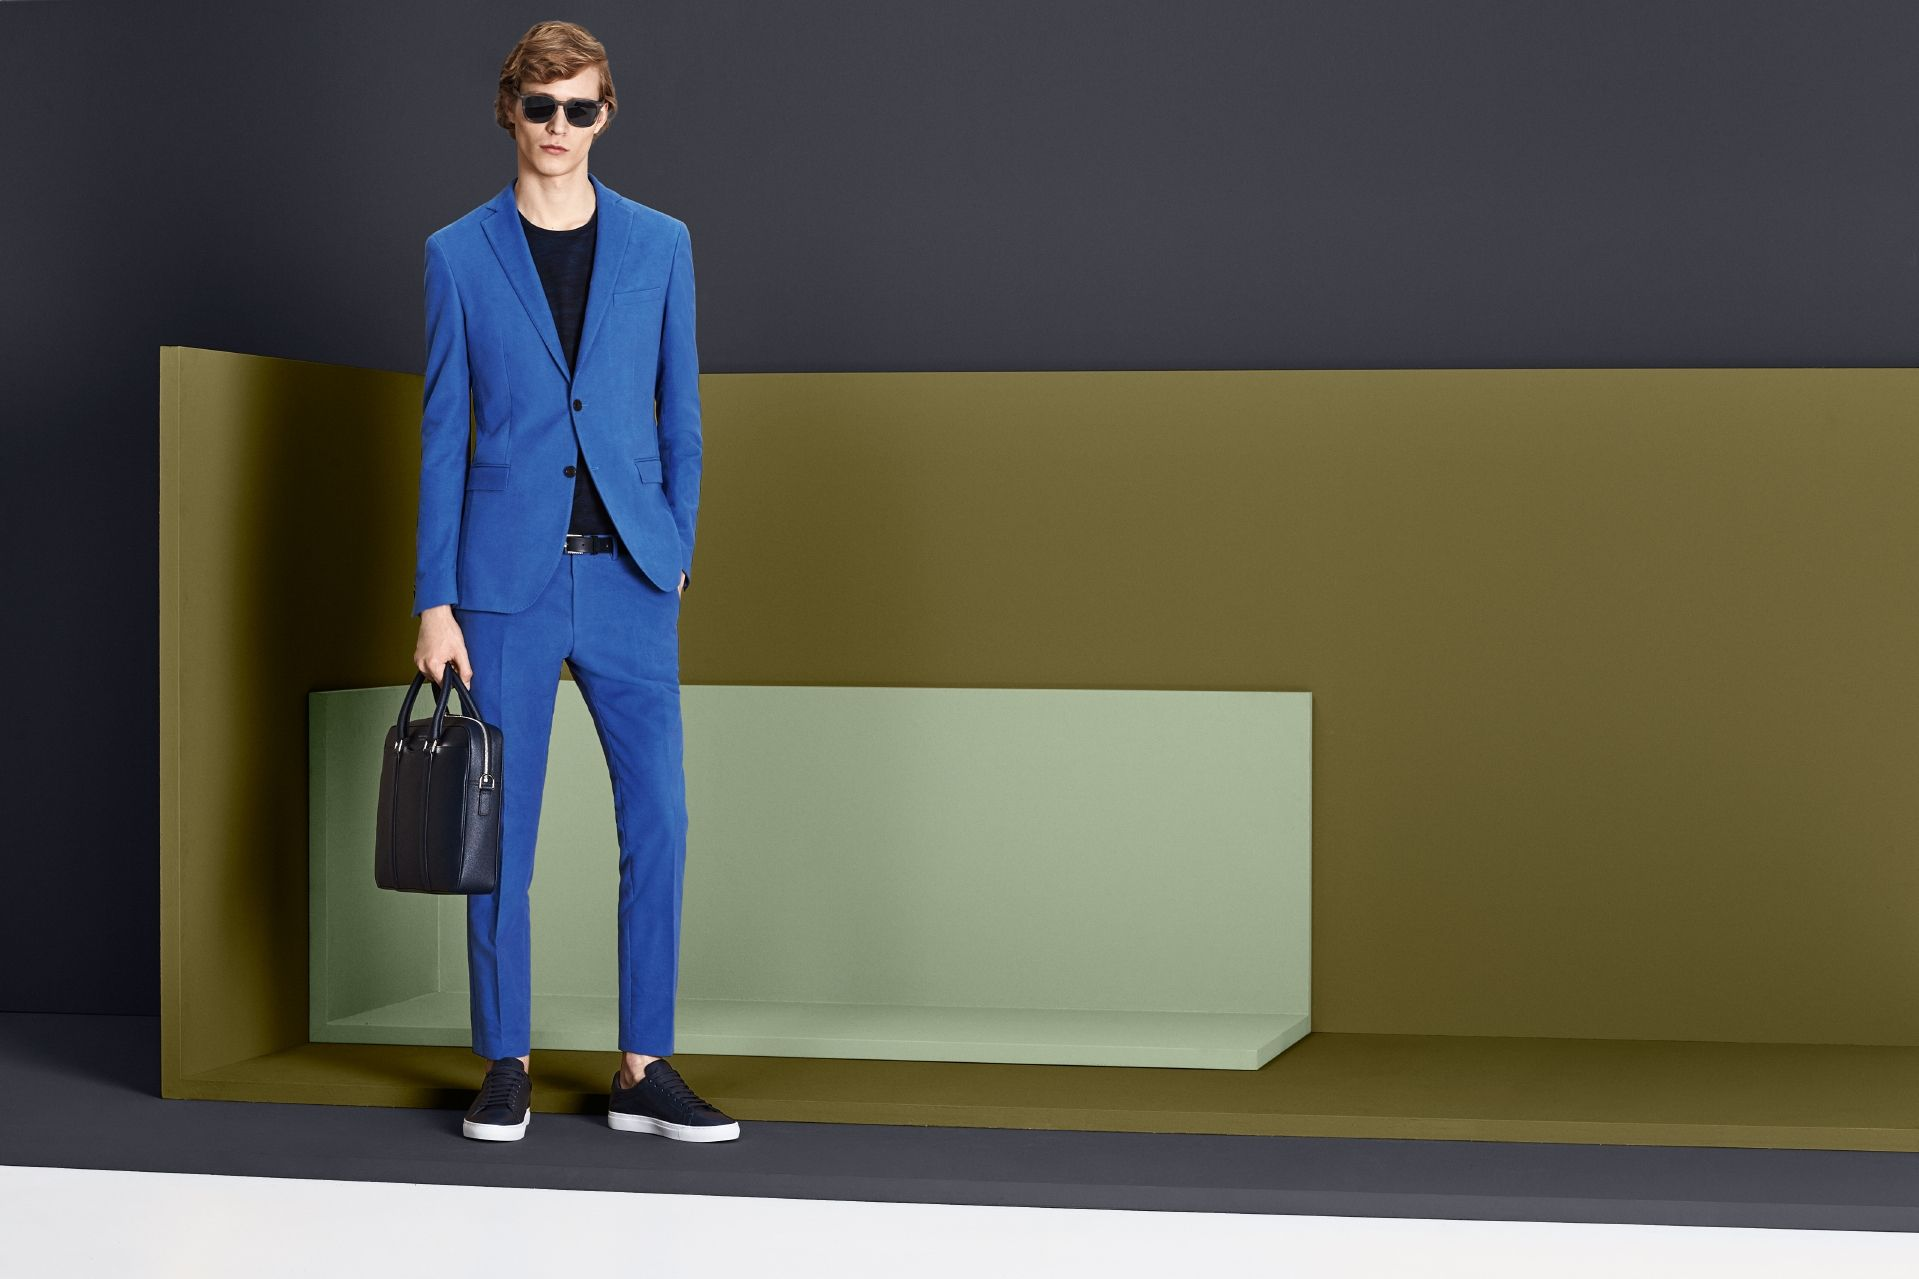 A shot of bright color adds new vibrancy to tailoring from the BOSS Menswear Fall/Winter 2016 collection